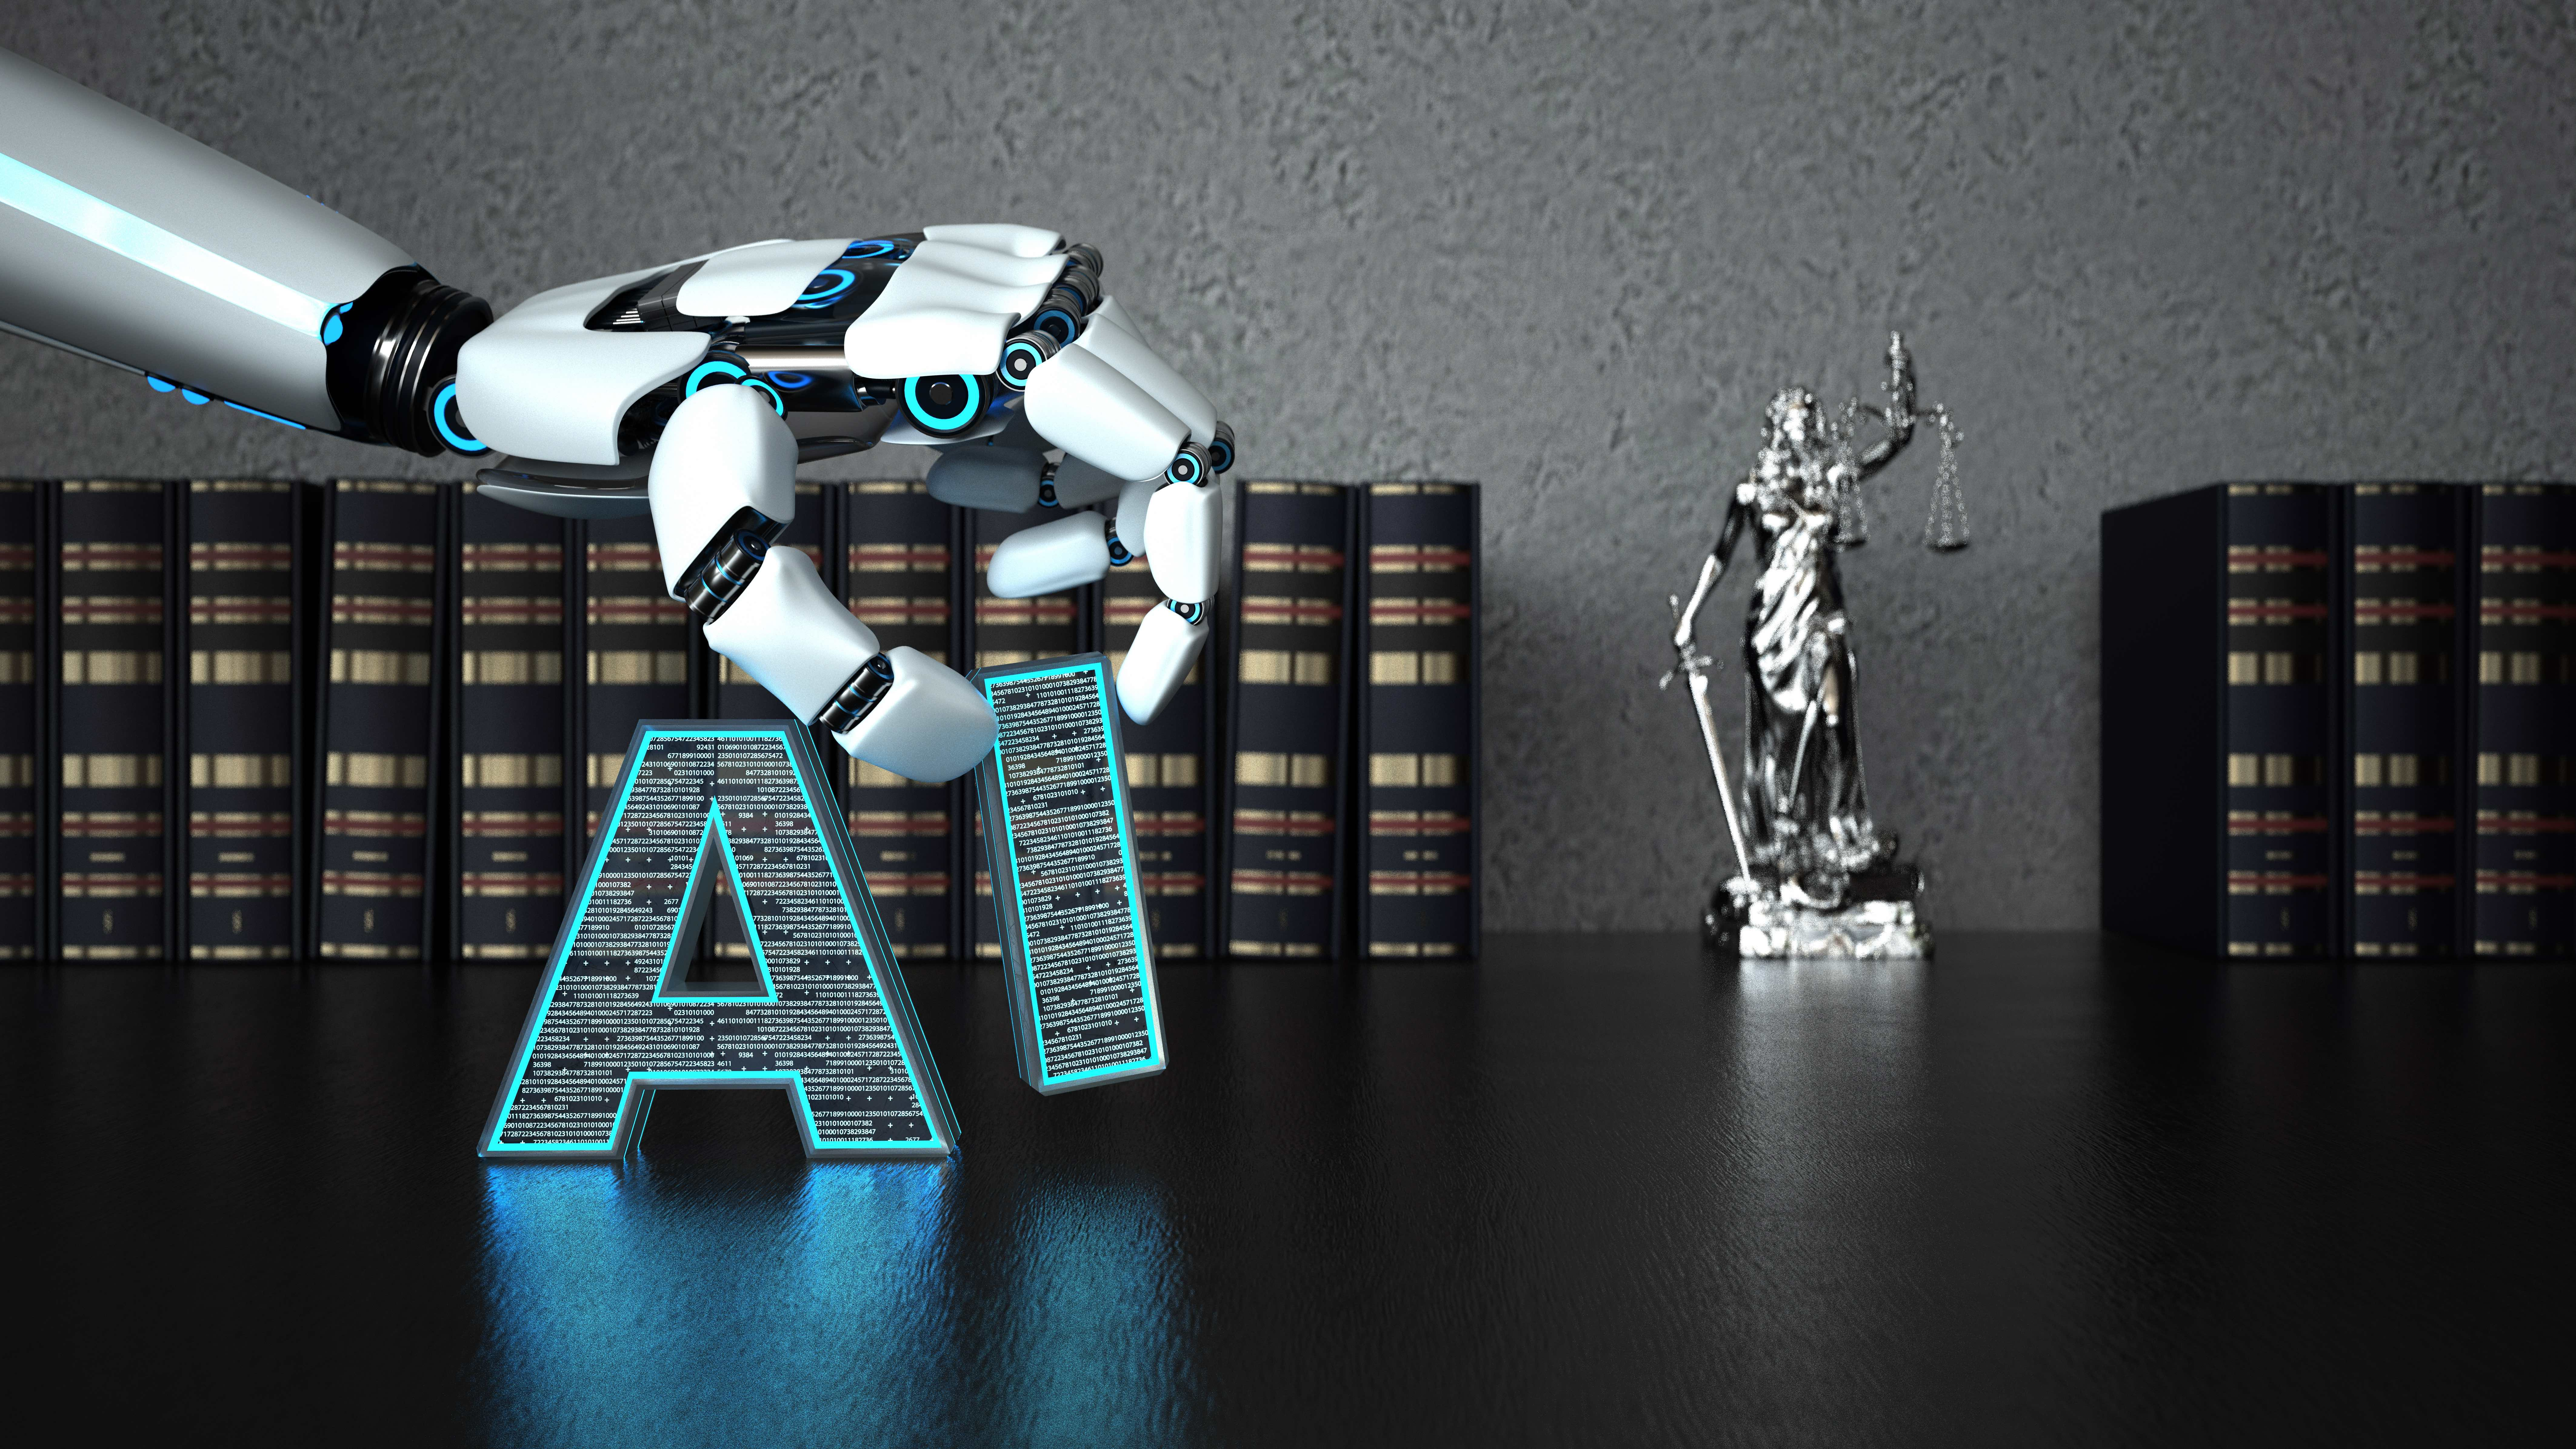 Artificial intelligence is trying to learn how you think and respond so that your behaviors can be better predicted and manipulated. (Alexander Limbach/Shutterstock)